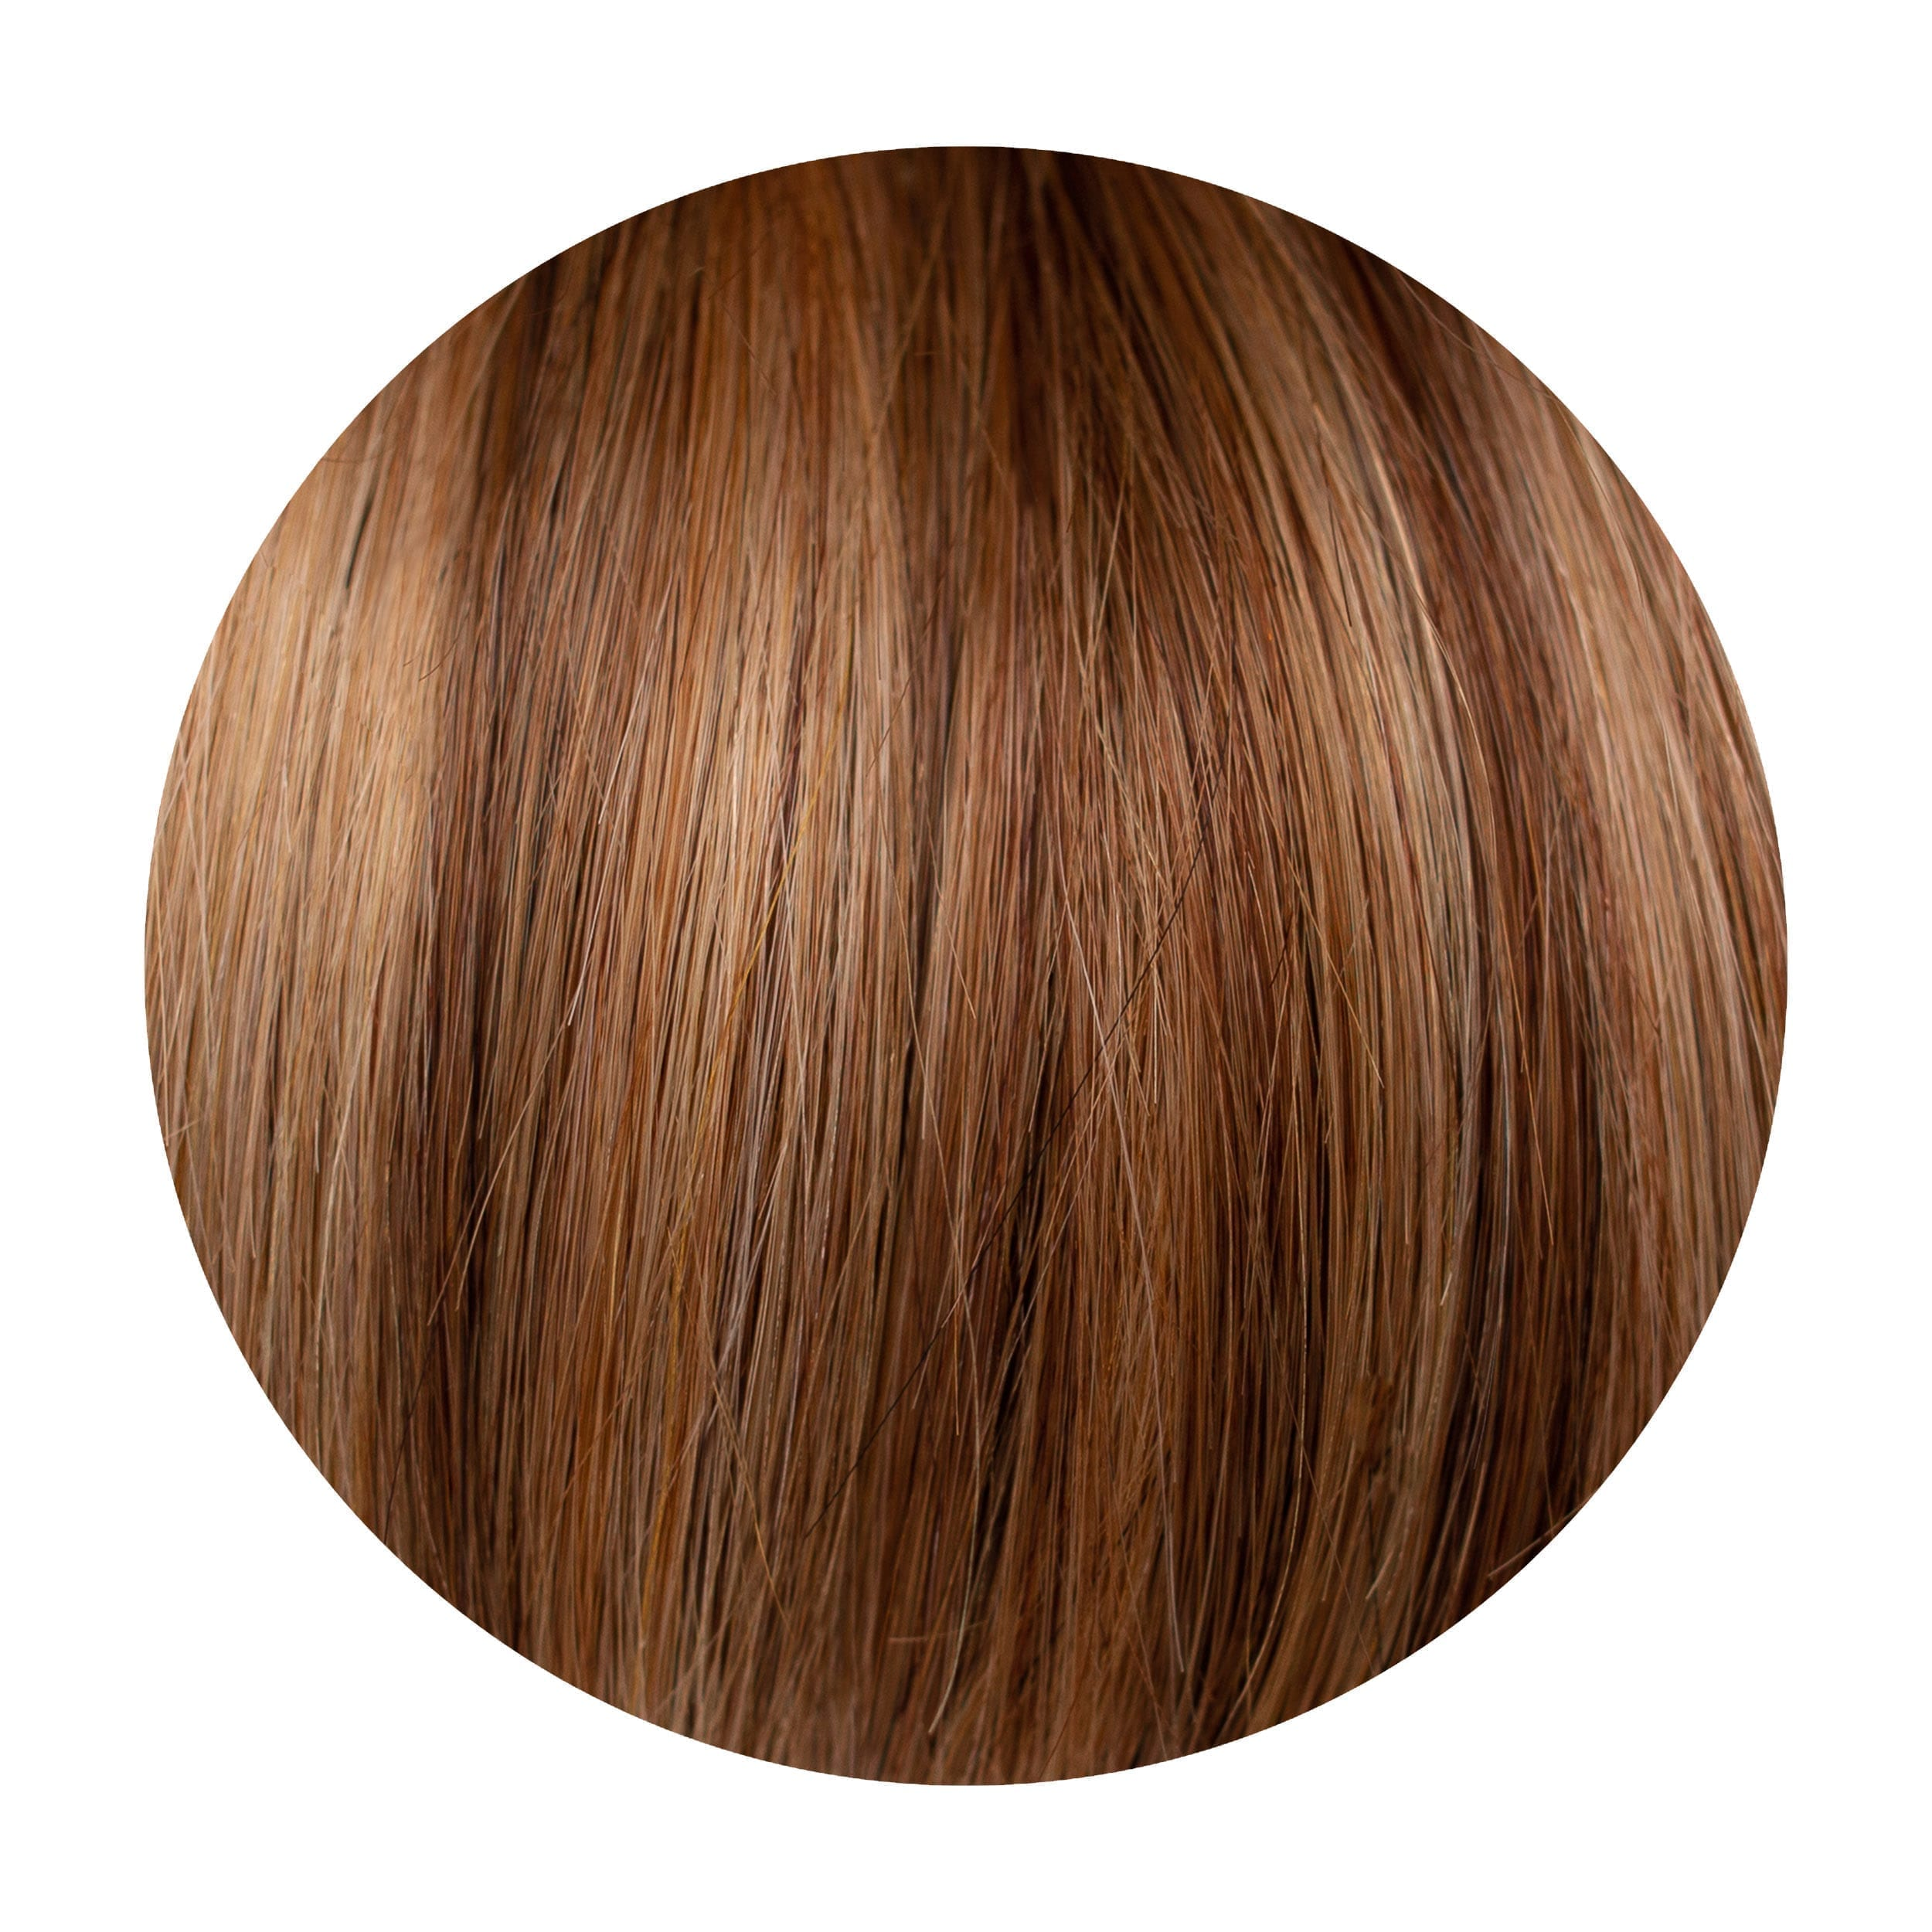 Caramel Blend Piano Colour Human Hair Extensions Clip in 1 Piece